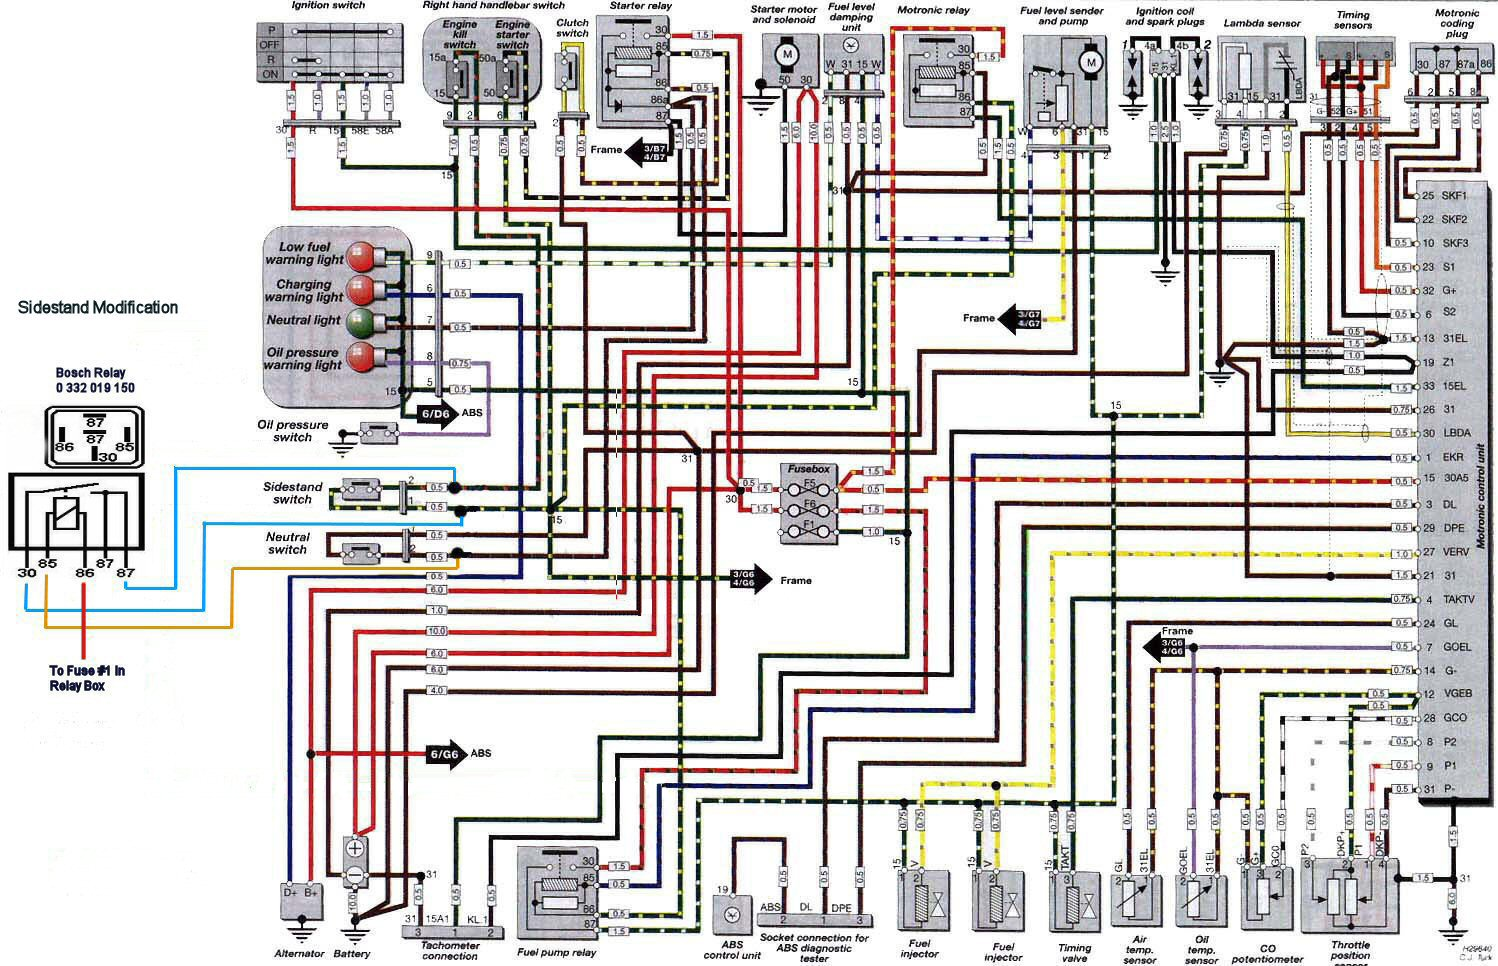 wiring diagram bmw f650gs wiring image wiring diagram wiring diagram bmw f650gs wiring wiring diagrams car on wiring diagram bmw f650gs